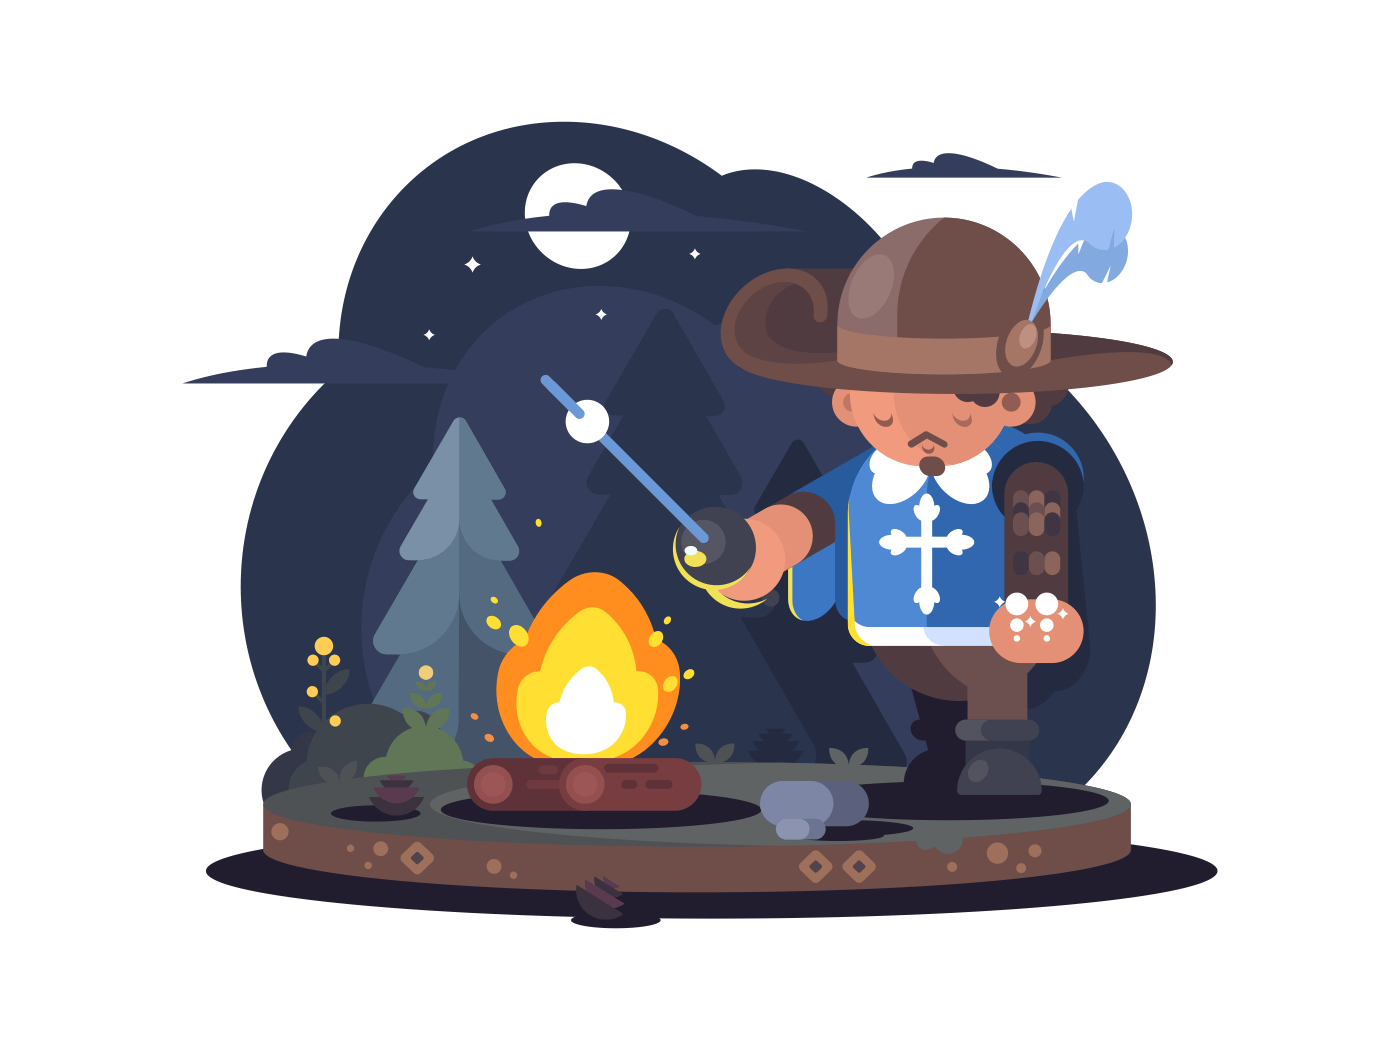 Musketeer in hat with feather vector illustration